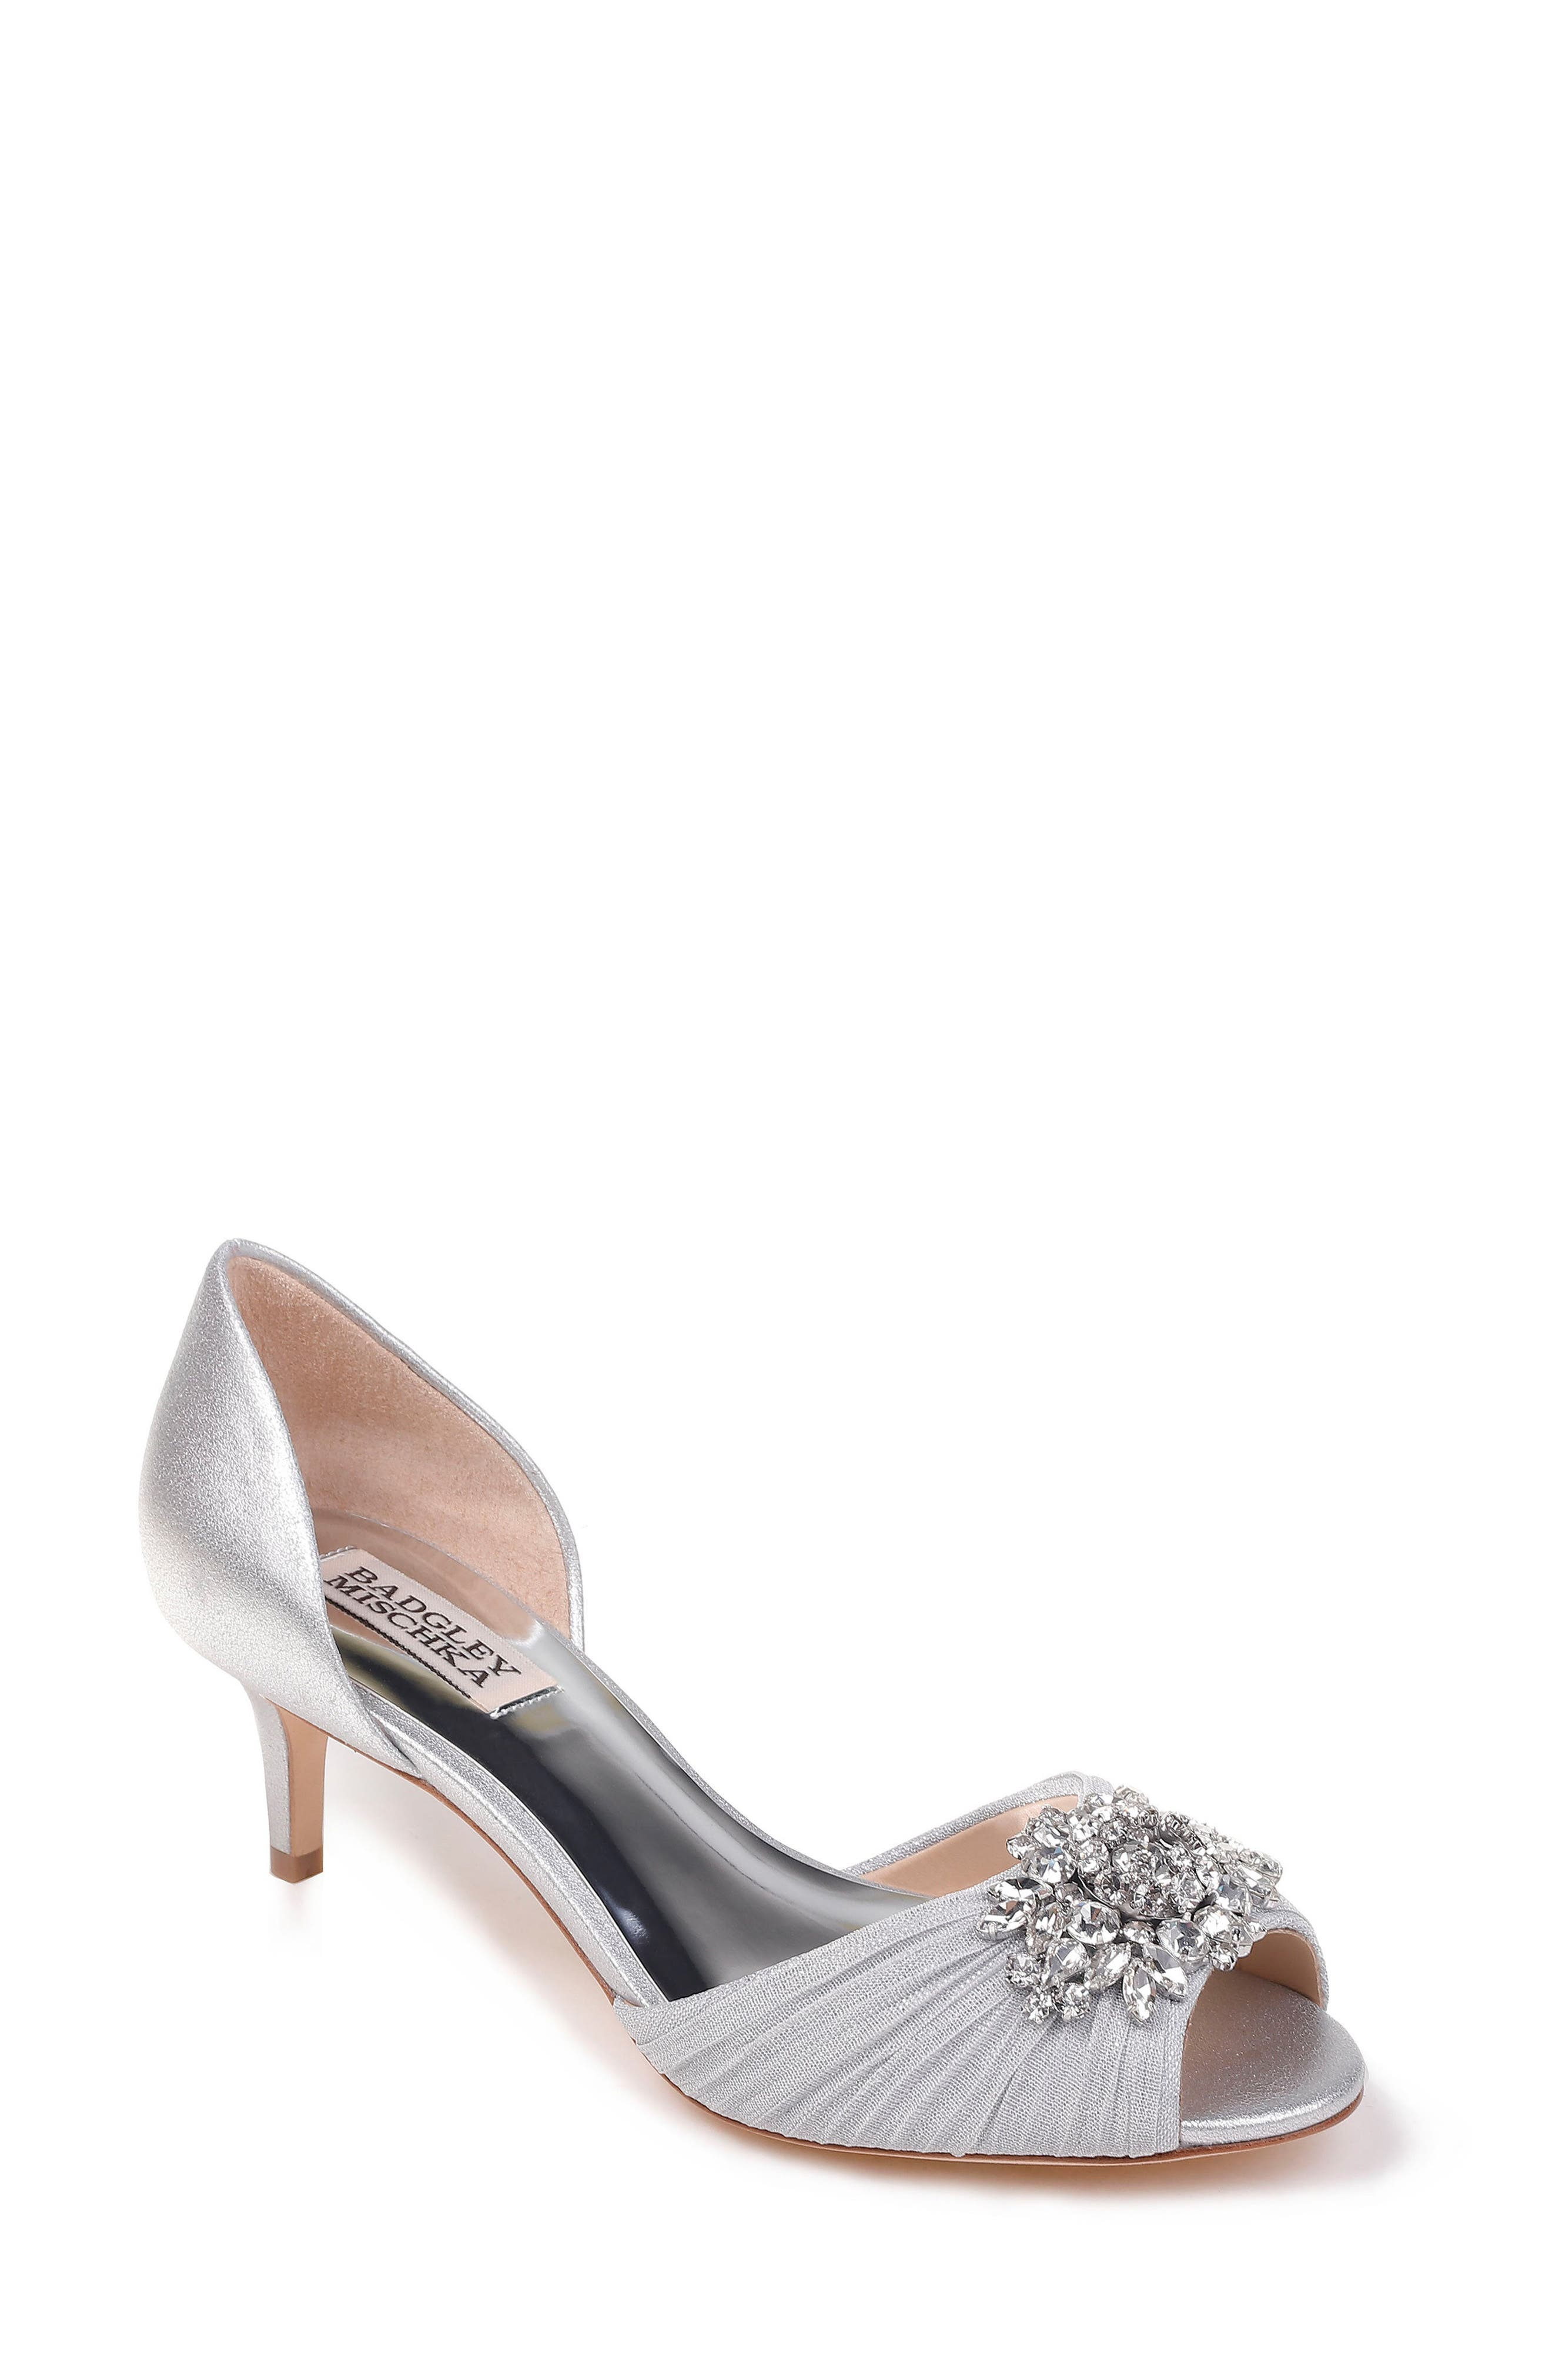 Sabine II Peep Toe Pump,                         Main,                         color, Silver Satin